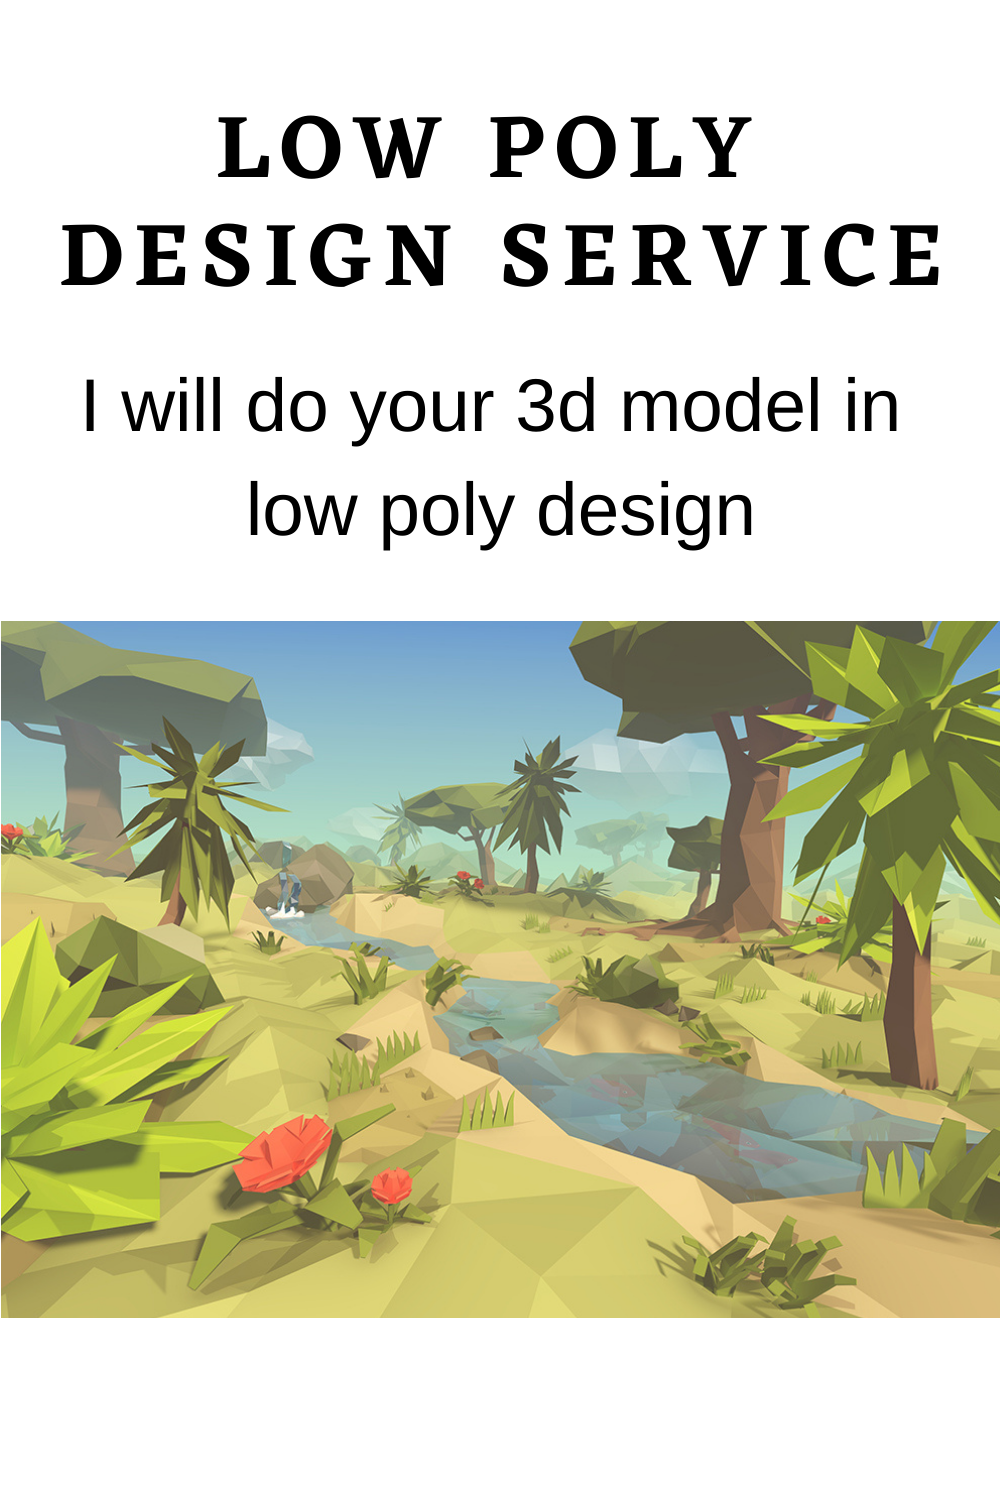 I will do your 3d model in low poly design, #3dlowpolycarforgames #3dlowpolycharactercreator #3dlowpolyconverter #3dlowpolycharactertutorial #3dlowpolydog #3dlowpolydxf #3dlowpolycardownload #freedownloadlowpoly3dmodels #lowpolydog3dmodel #lowpolydinosaur3dmodel #lowpolydeer3dmodel #lowpolydragon3dmodel #3dlowpolyenvironment #3dlowpolyeditor #lowpolyearth3dmodelfree #lowpolyelephant3dmodelfree #lowpolyelephant3dmodel #lowpolyelement3d #lowpolyexcavator3dmodel #lowpolyengine3dmodel #3dlowpolyfree